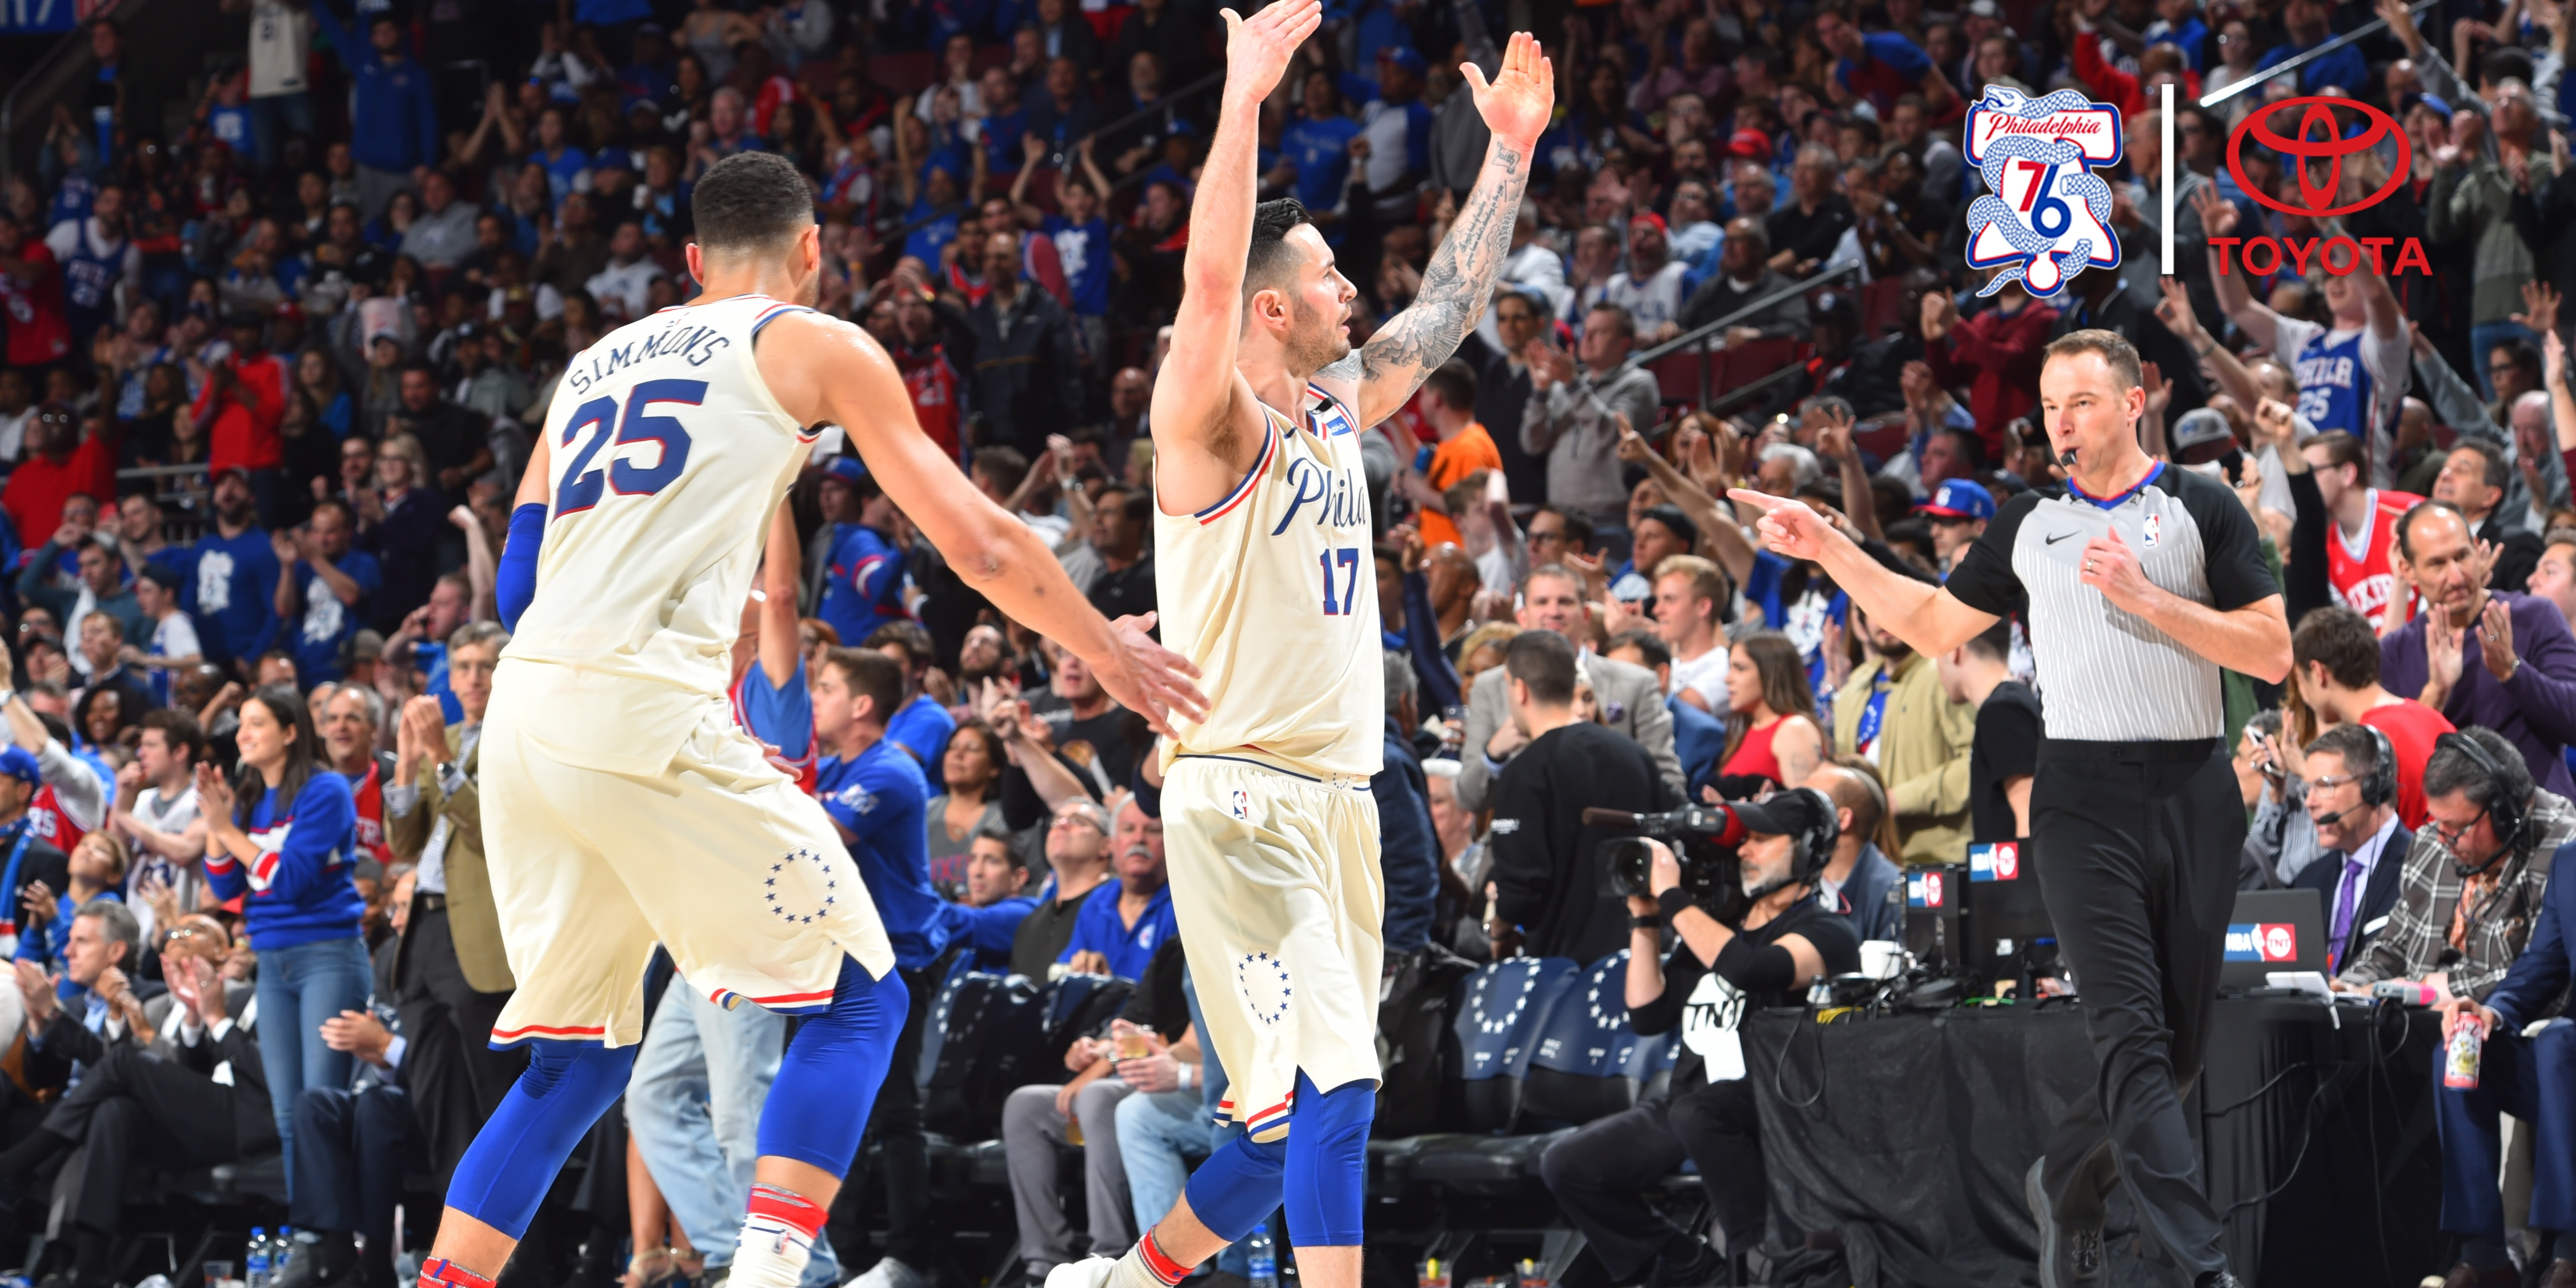 At the Buzzer  Big Second Half Vaults Sixers into Second Round